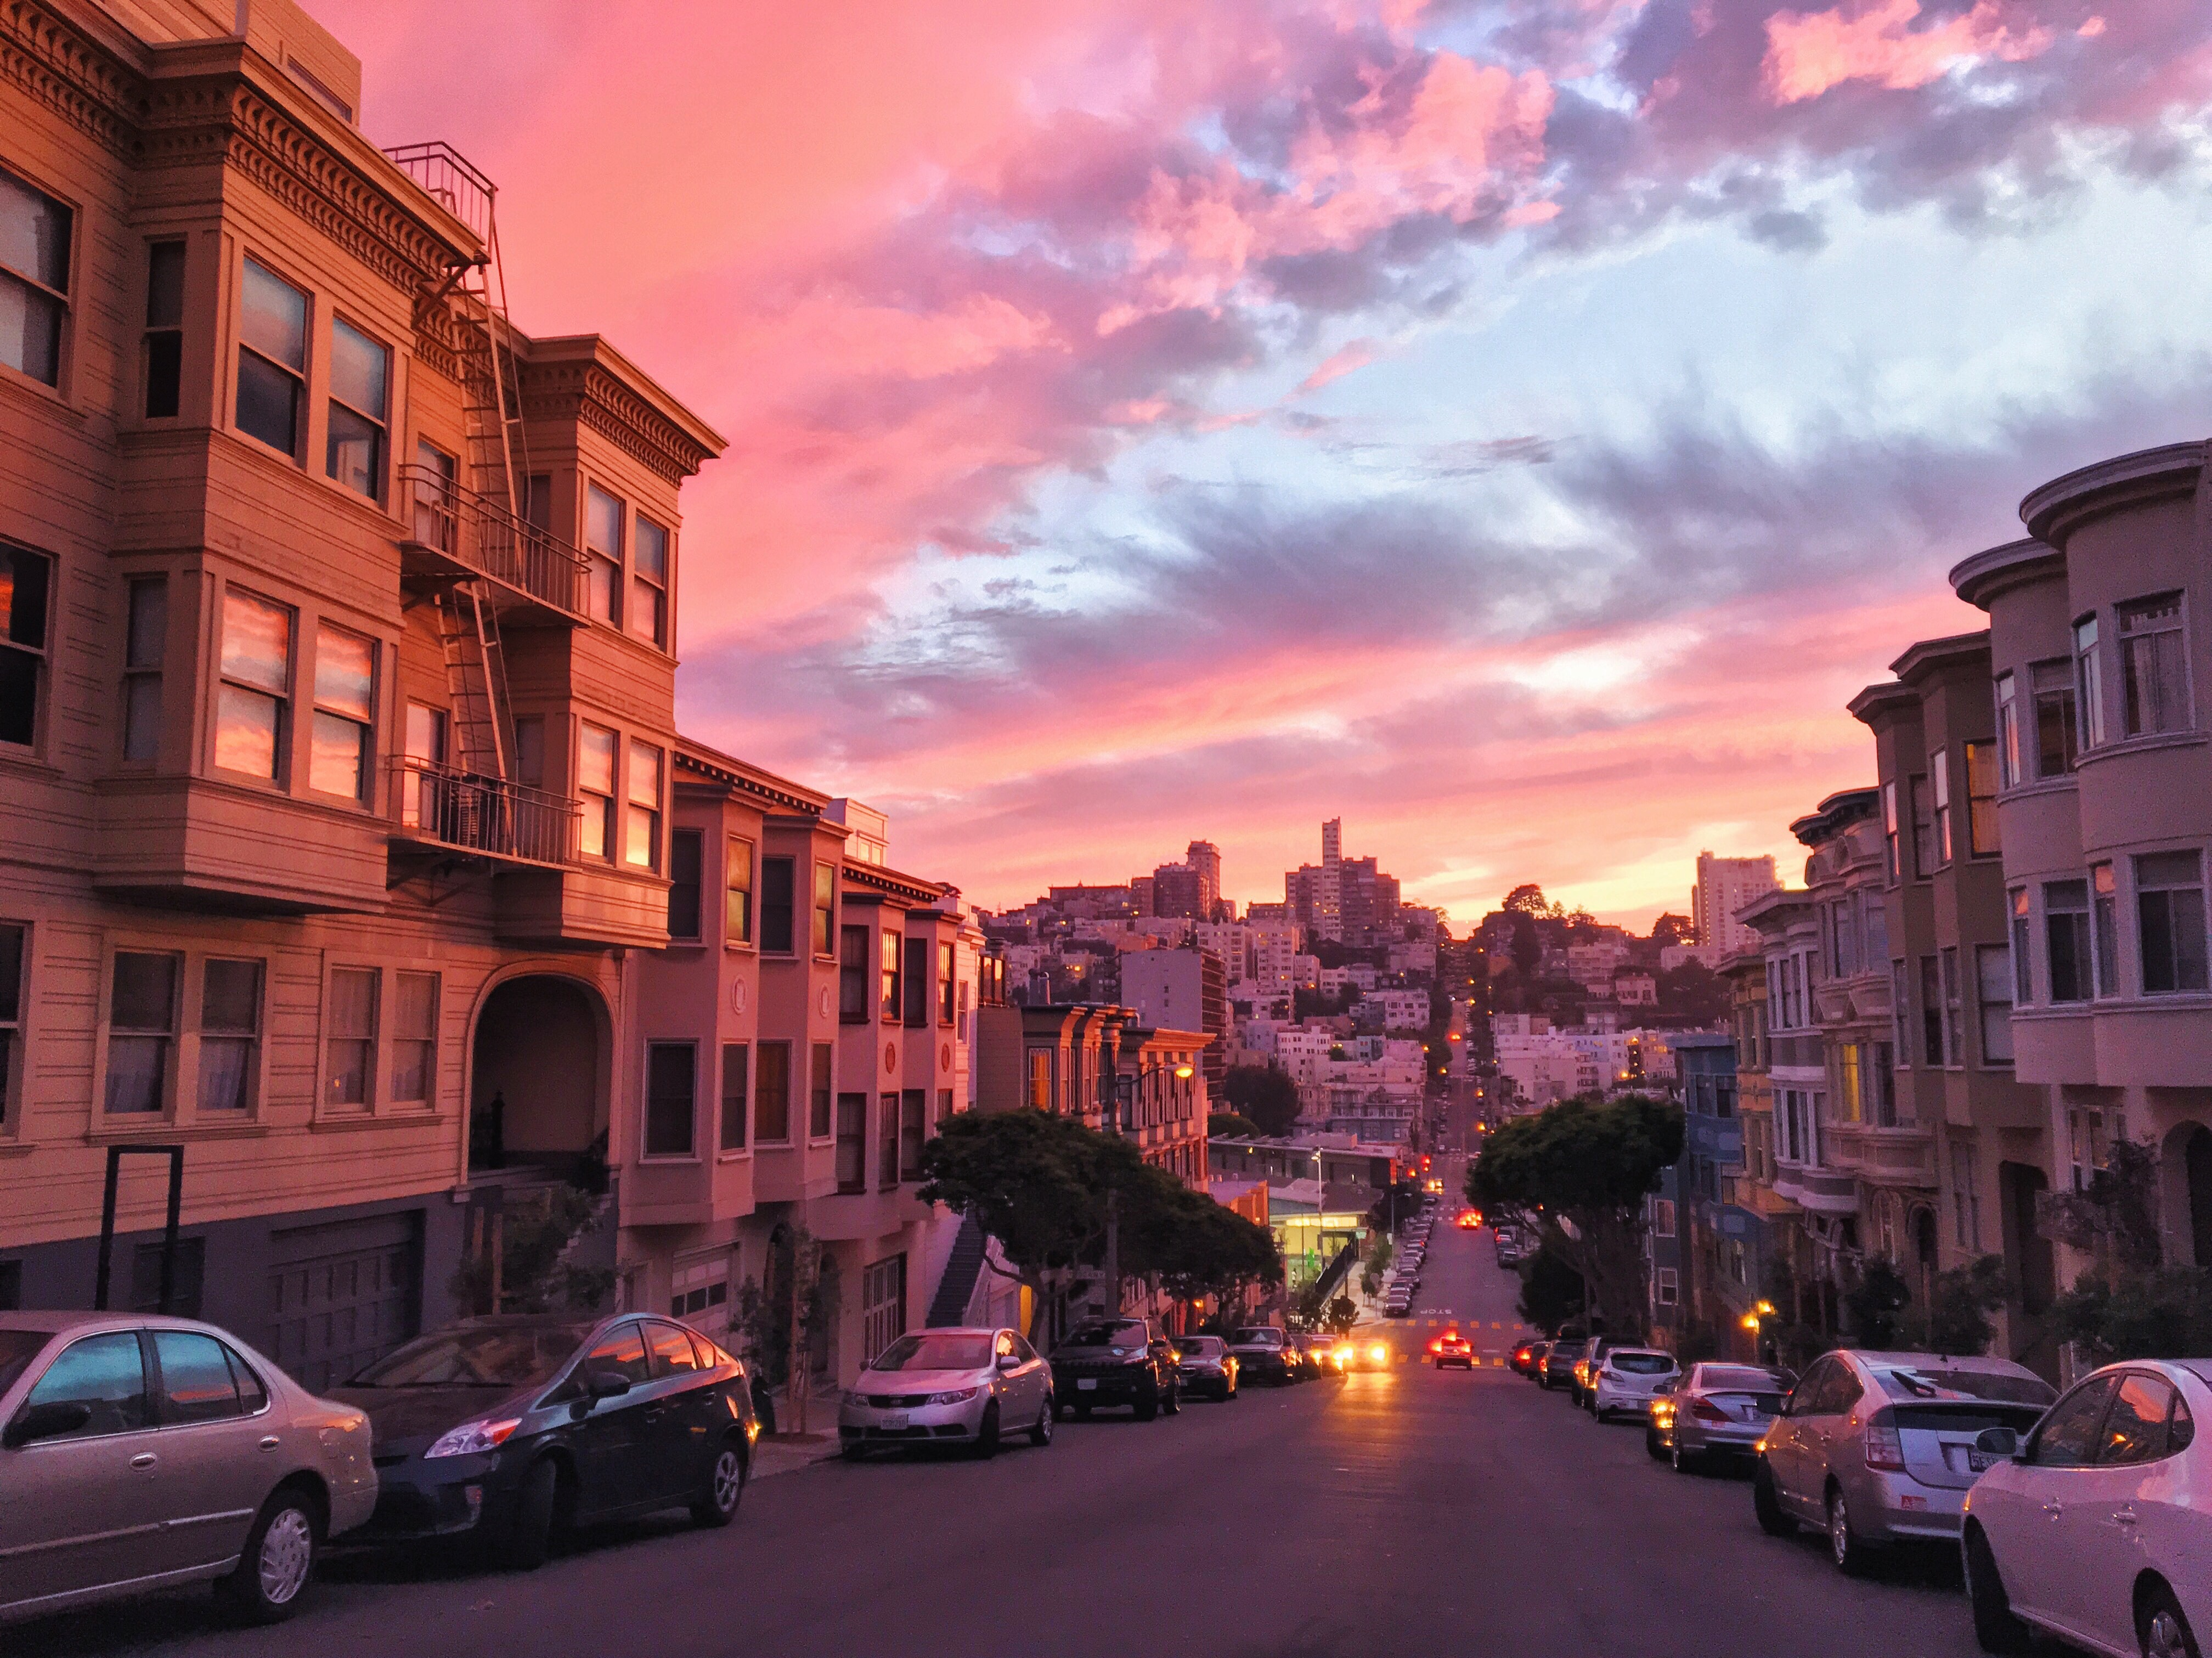 Tramonto rosso a San Francisco